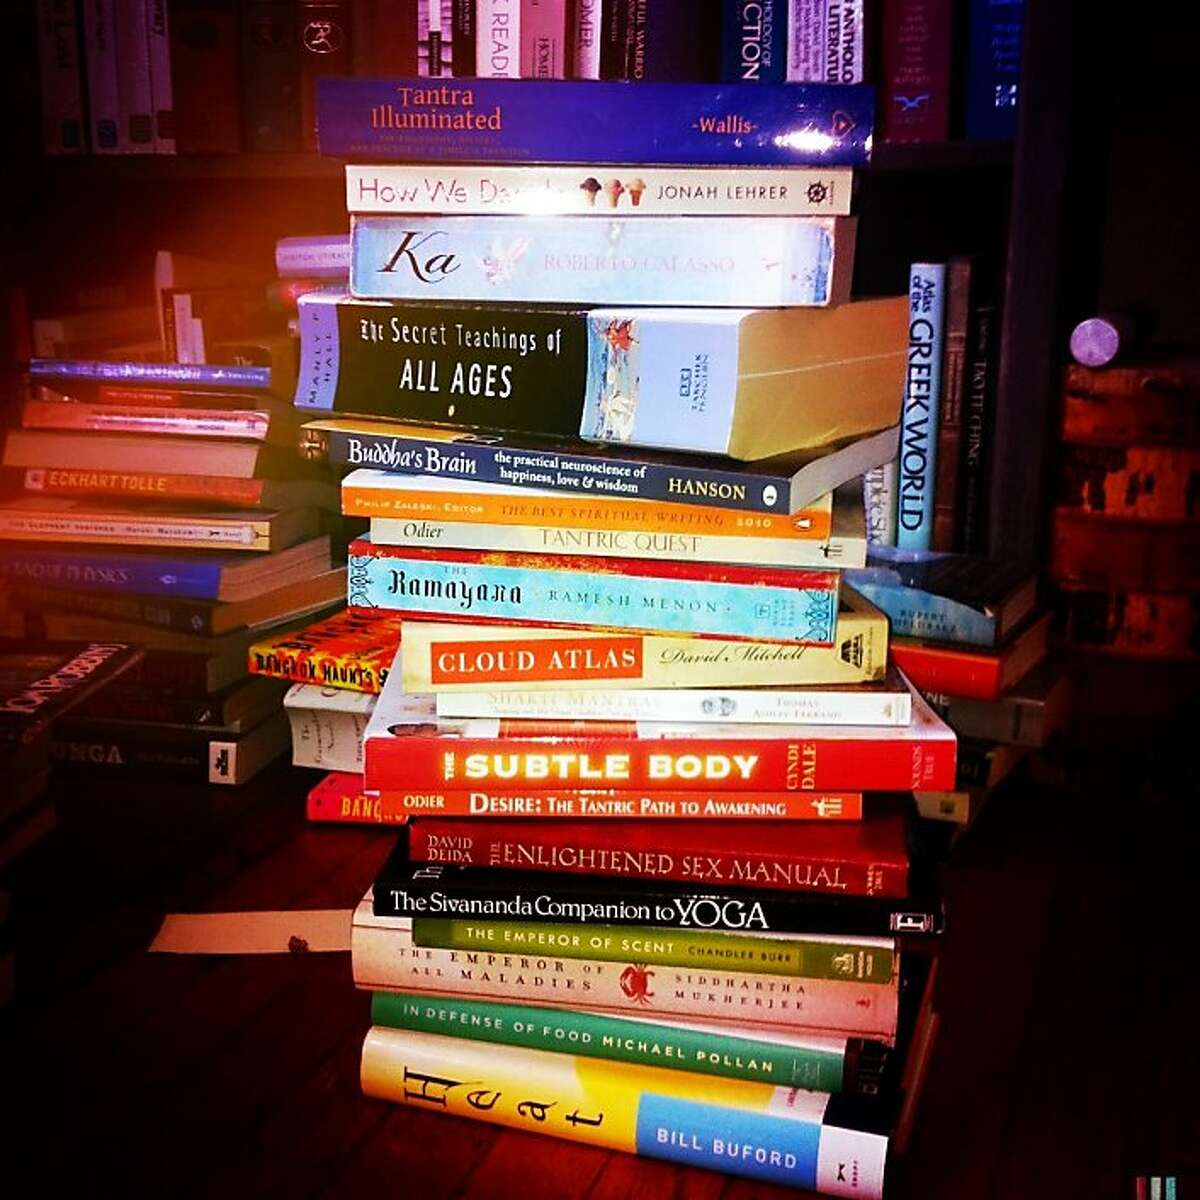 A wayward and wonderful summer reading list, 2012 style, hopefully not too neglected